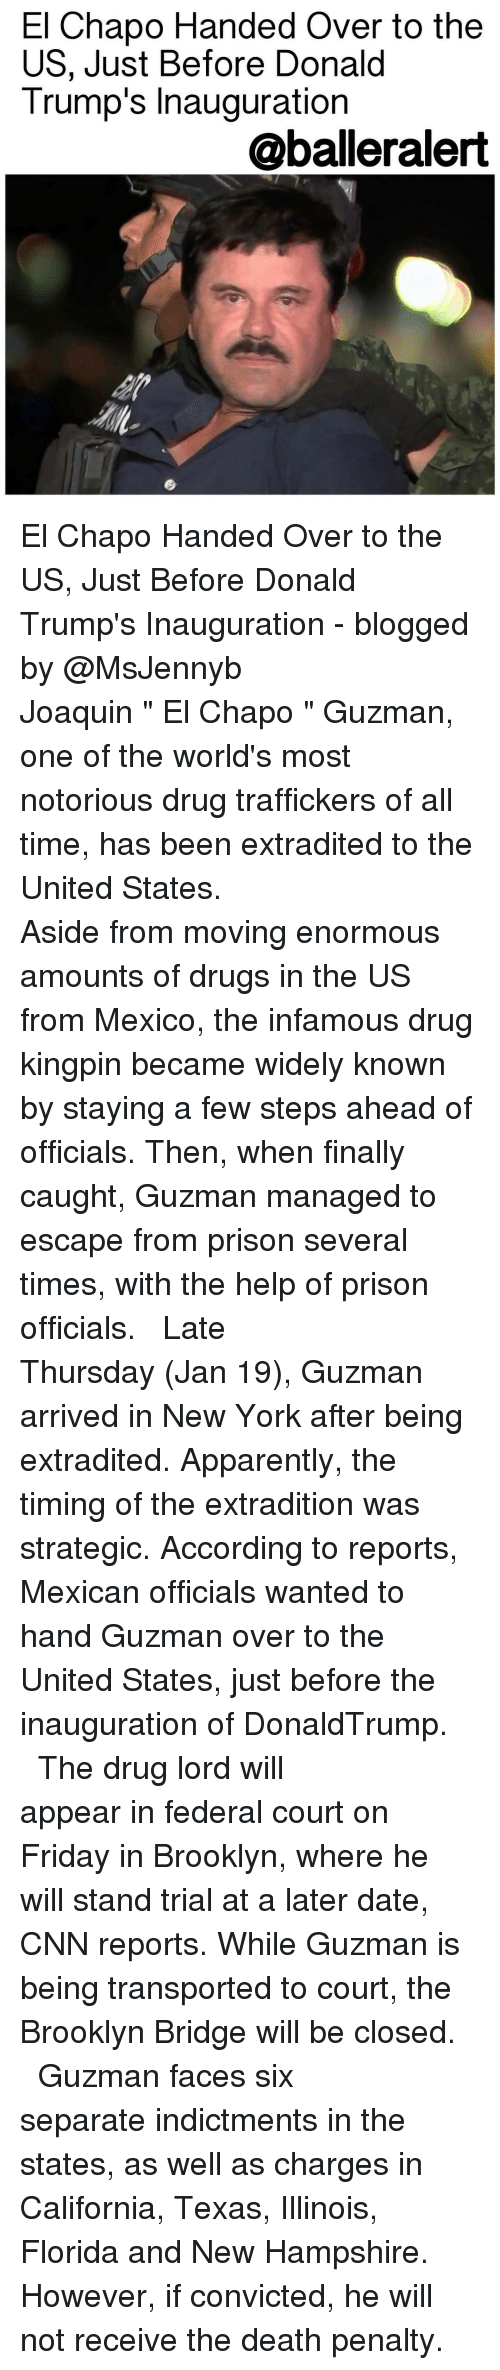 "Donald Trump Inauguration: El Chapo Handed Over to the  US, Just Before Donald  Trump's Inauguration  aballeralert El Chapo Handed Over to the US, Just Before Donald Trump's Inauguration - blogged by @MsJennyb ⠀⠀⠀⠀⠀⠀⠀⠀⠀ ⠀⠀⠀⠀⠀⠀⠀⠀⠀ Joaquin "" El Chapo "" Guzman, one of the world's most notorious drug traffickers of all time, has been extradited to the United States. ⠀⠀⠀⠀⠀⠀⠀⠀⠀ ⠀⠀⠀⠀⠀⠀⠀⠀⠀ Aside from moving enormous amounts of drugs in the US from Mexico, the infamous drug kingpin became widely known by staying a few steps ahead of officials. Then, when finally caught, Guzman managed to escape from prison several times, with the help of prison officials. ⠀⠀⠀⠀⠀⠀⠀⠀⠀ ⠀⠀⠀⠀⠀⠀⠀⠀⠀ Late Thursday (Jan 19), Guzman arrived in New York after being extradited. Apparently, the timing of the extradition was strategic. According to reports, Mexican officials wanted to hand Guzman over to the United States, just before the inauguration of DonaldTrump. ⠀⠀⠀⠀⠀⠀⠀⠀⠀ ⠀⠀⠀⠀⠀⠀⠀⠀⠀ The drug lord will appear in federal court on Friday in Brooklyn, where he will stand trial at a later date, CNN reports. While Guzman is being transported to court, the Brooklyn Bridge will be closed. ⠀⠀⠀⠀⠀⠀⠀⠀⠀ ⠀⠀⠀⠀⠀⠀⠀⠀⠀ Guzman faces six separate indictments in the states, as well as charges in California, Texas, Illinois, Florida and New Hampshire. However, if convicted, he will not receive the death penalty."